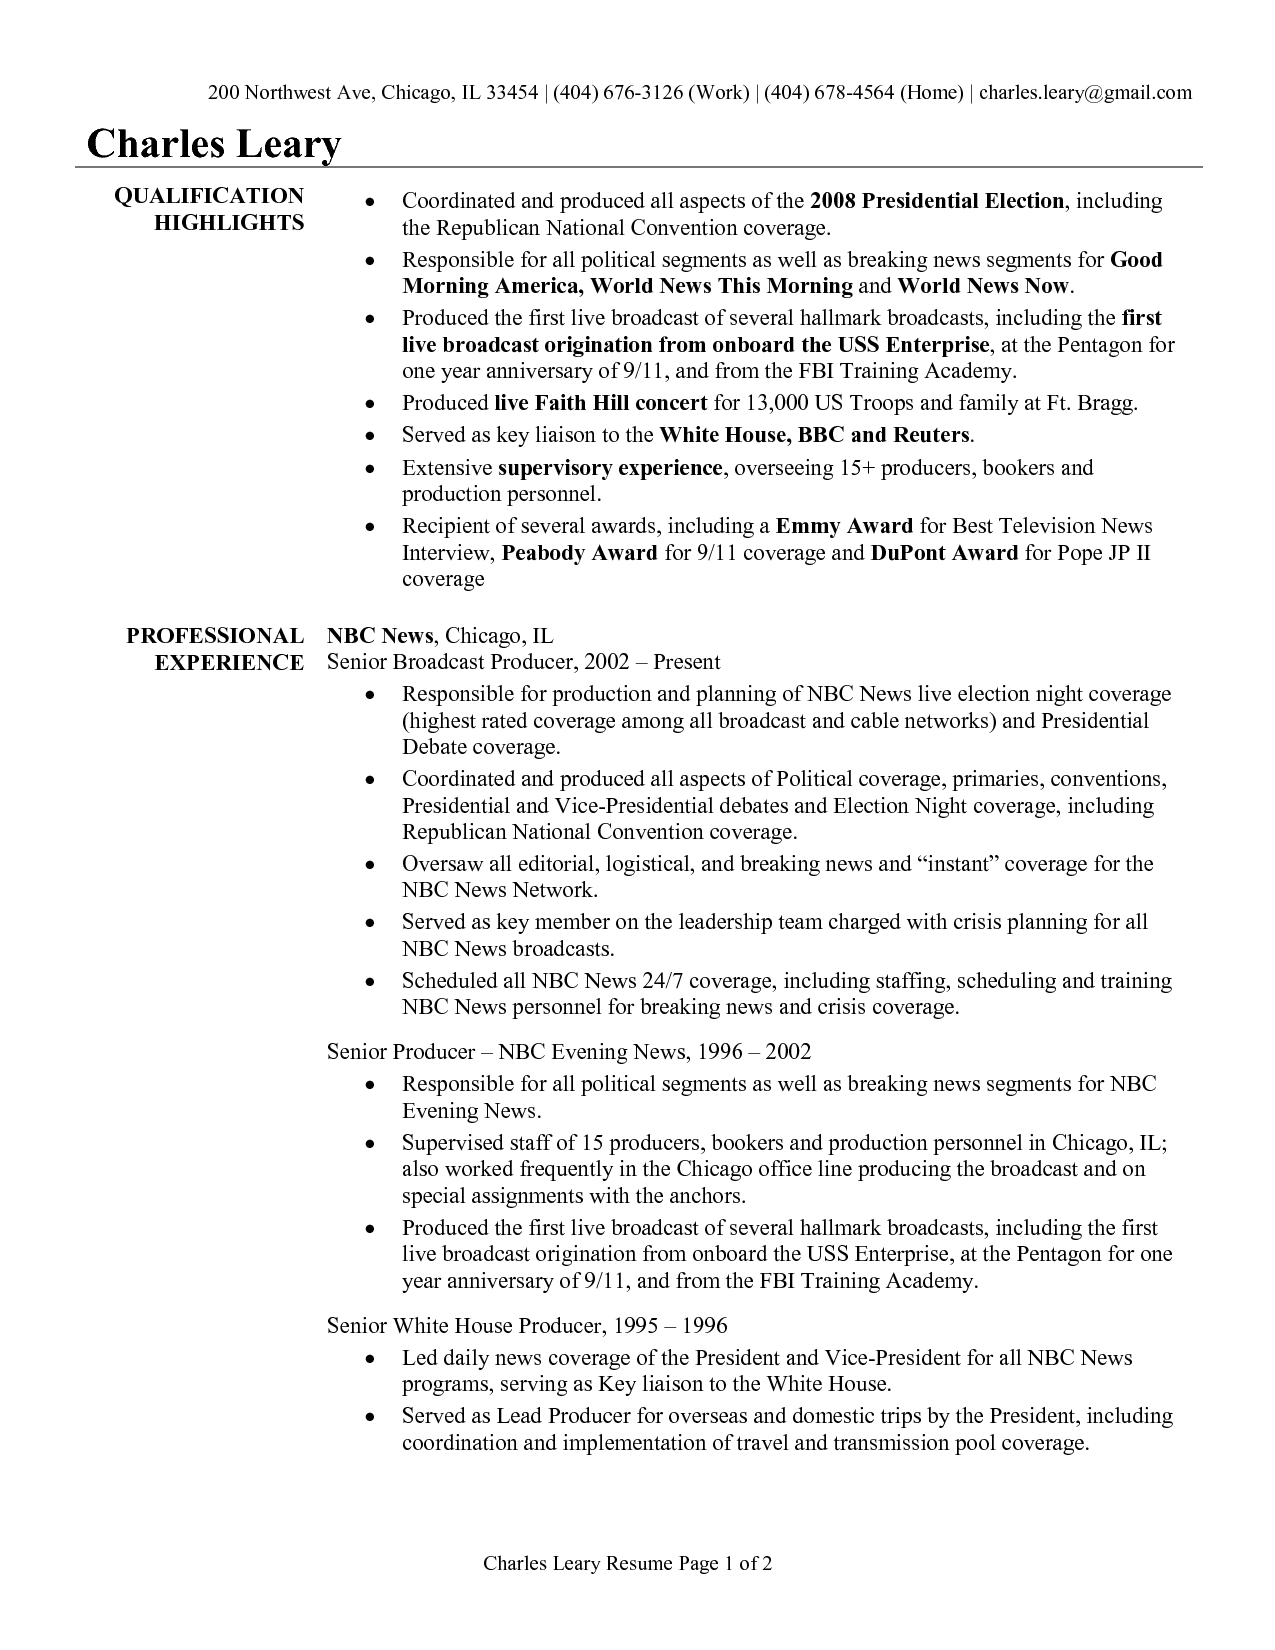 Insurance Producer Resume Cover Letter For Underwriter Cover